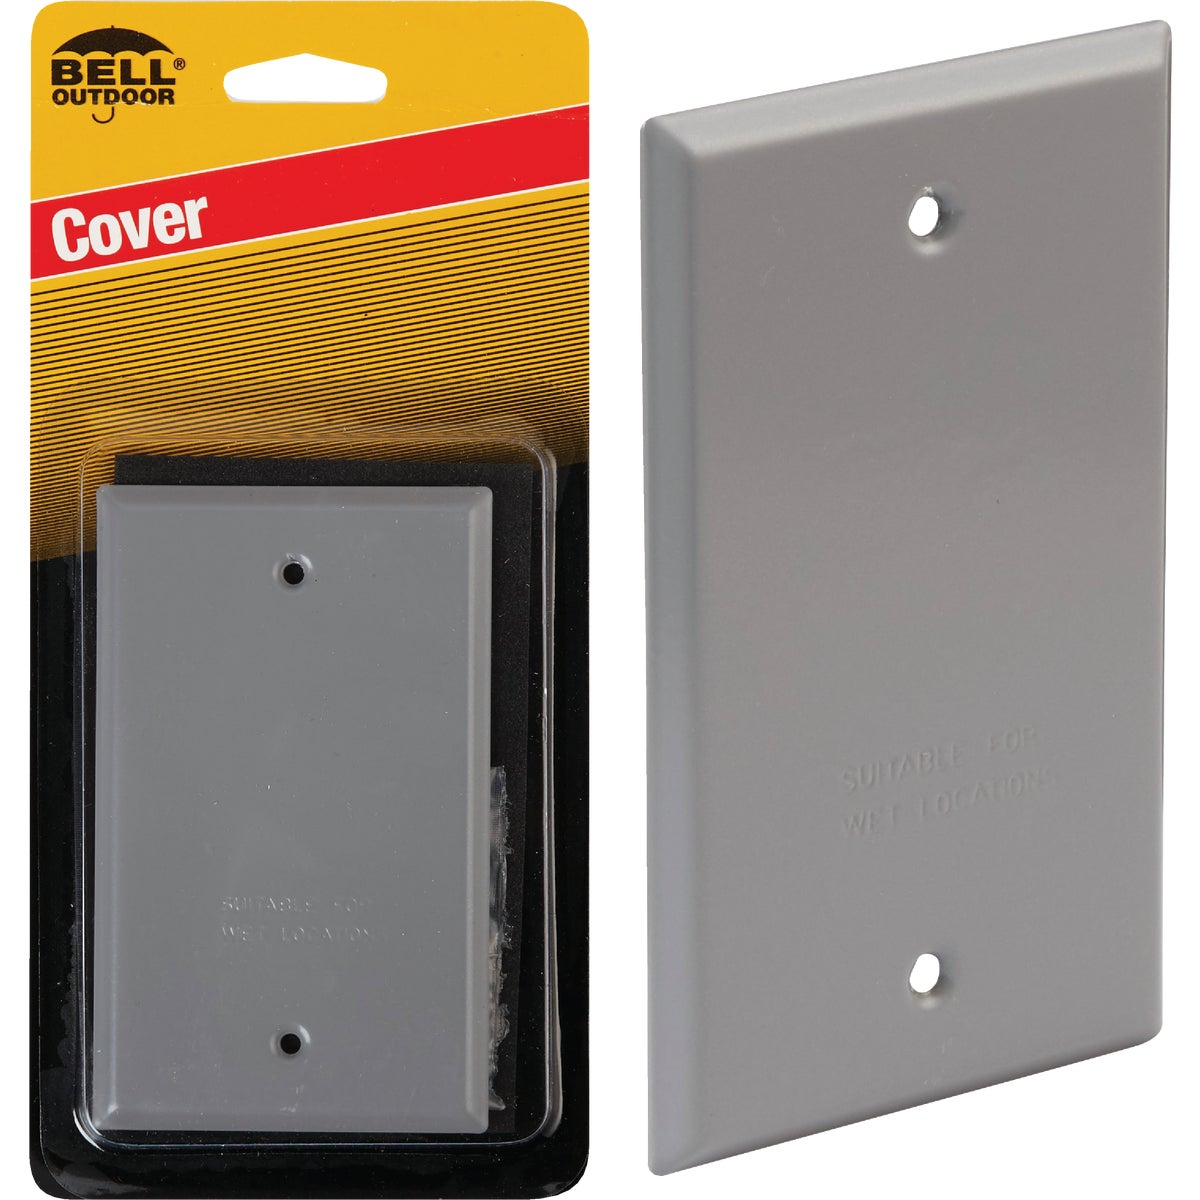 OUTDOOR BLANK COVER - 5943-1 by Hubbell